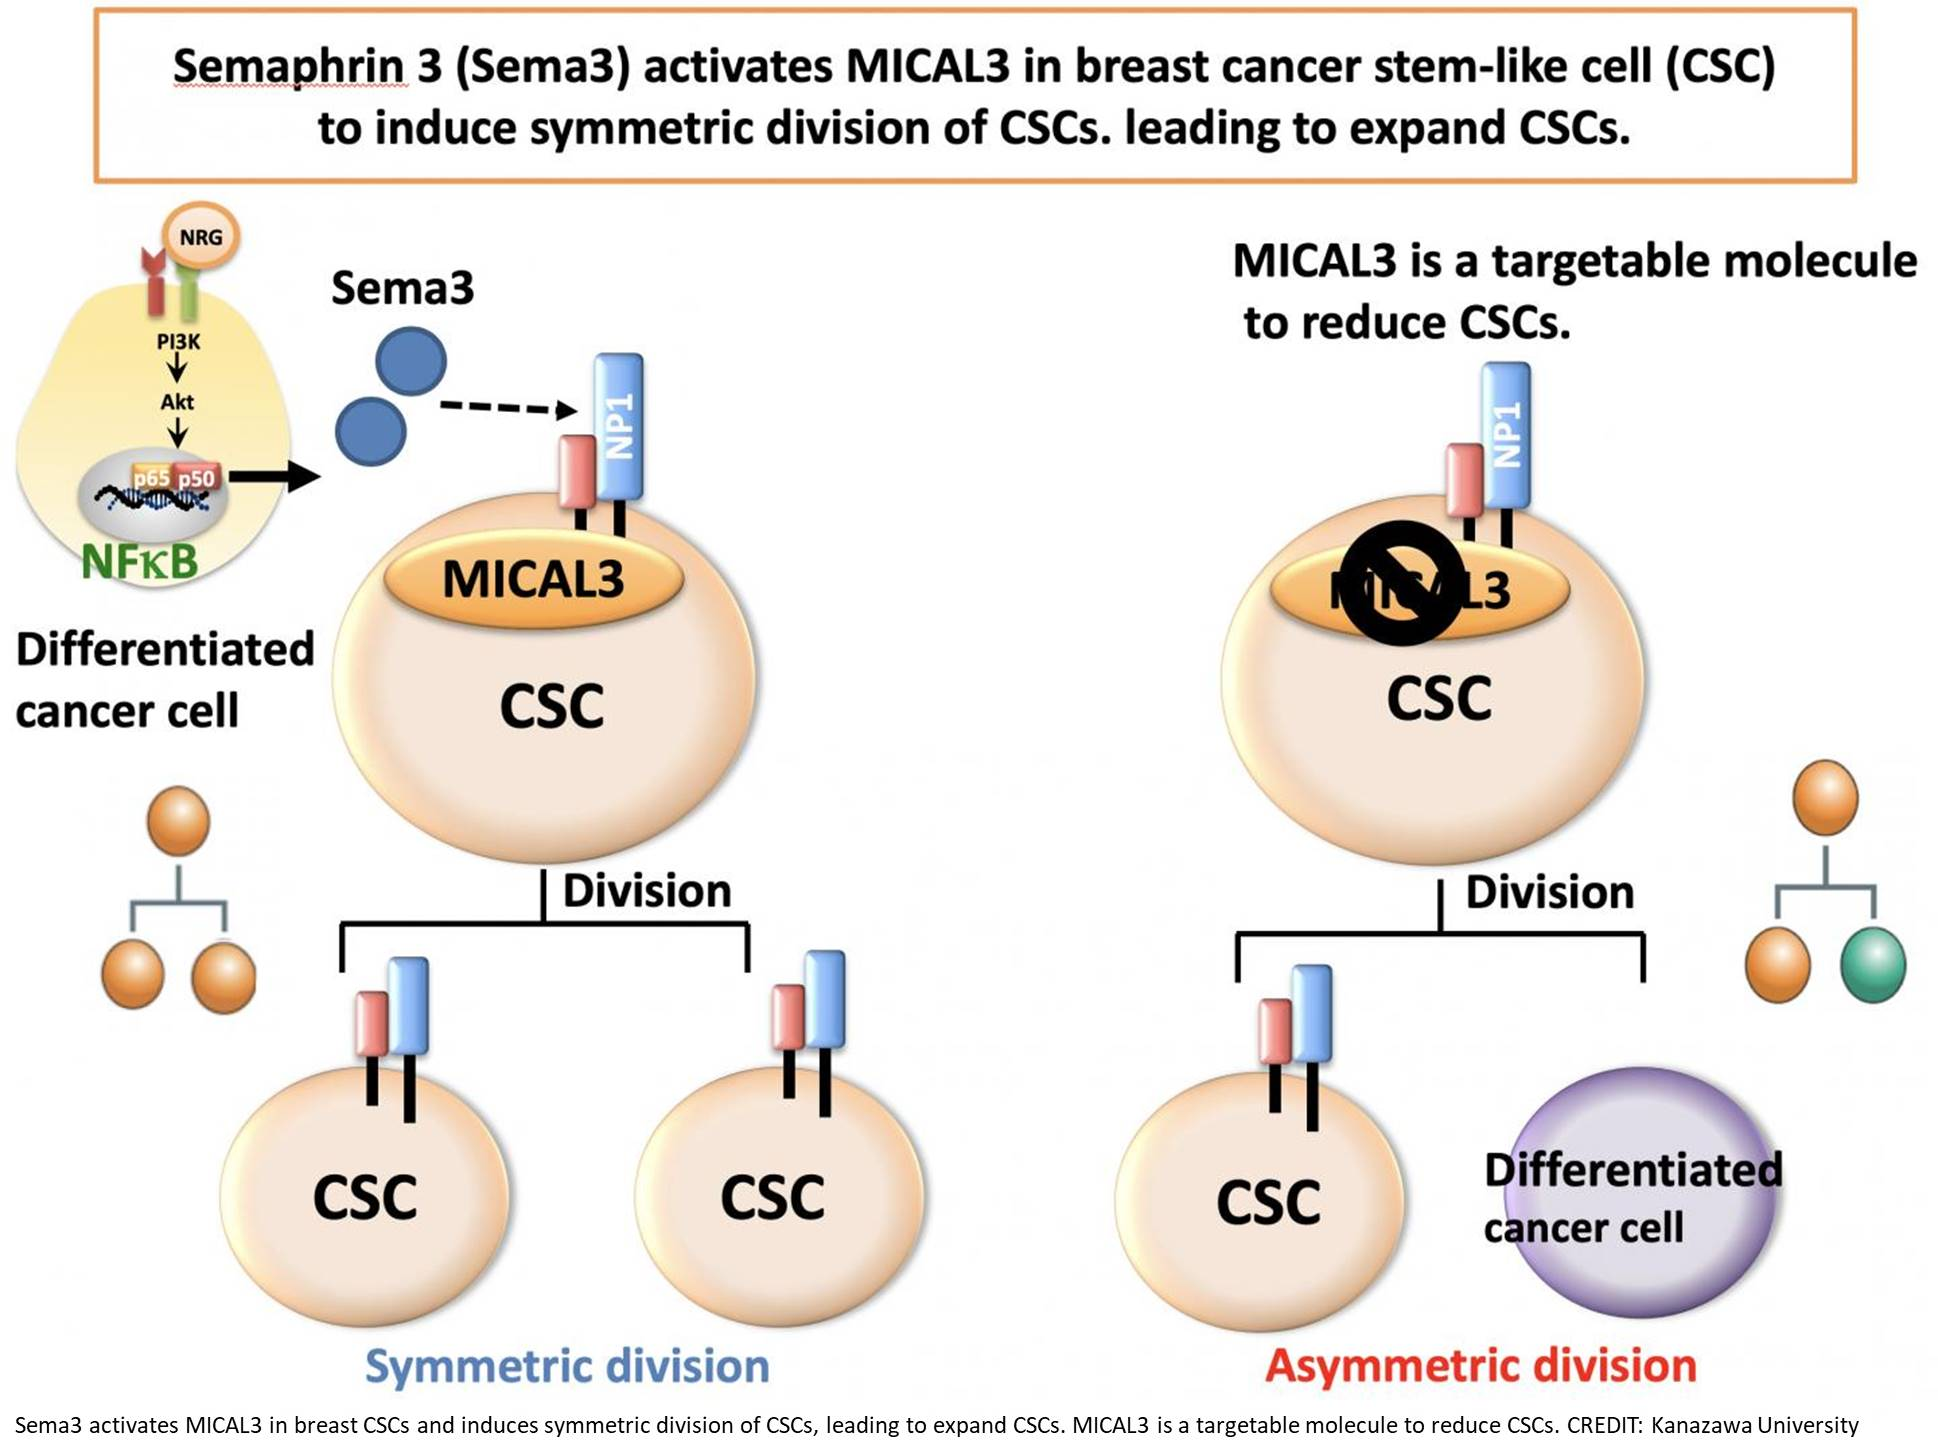 Signaling pathway in symmetric cell division of cancer stem cells in breast cancer discovered